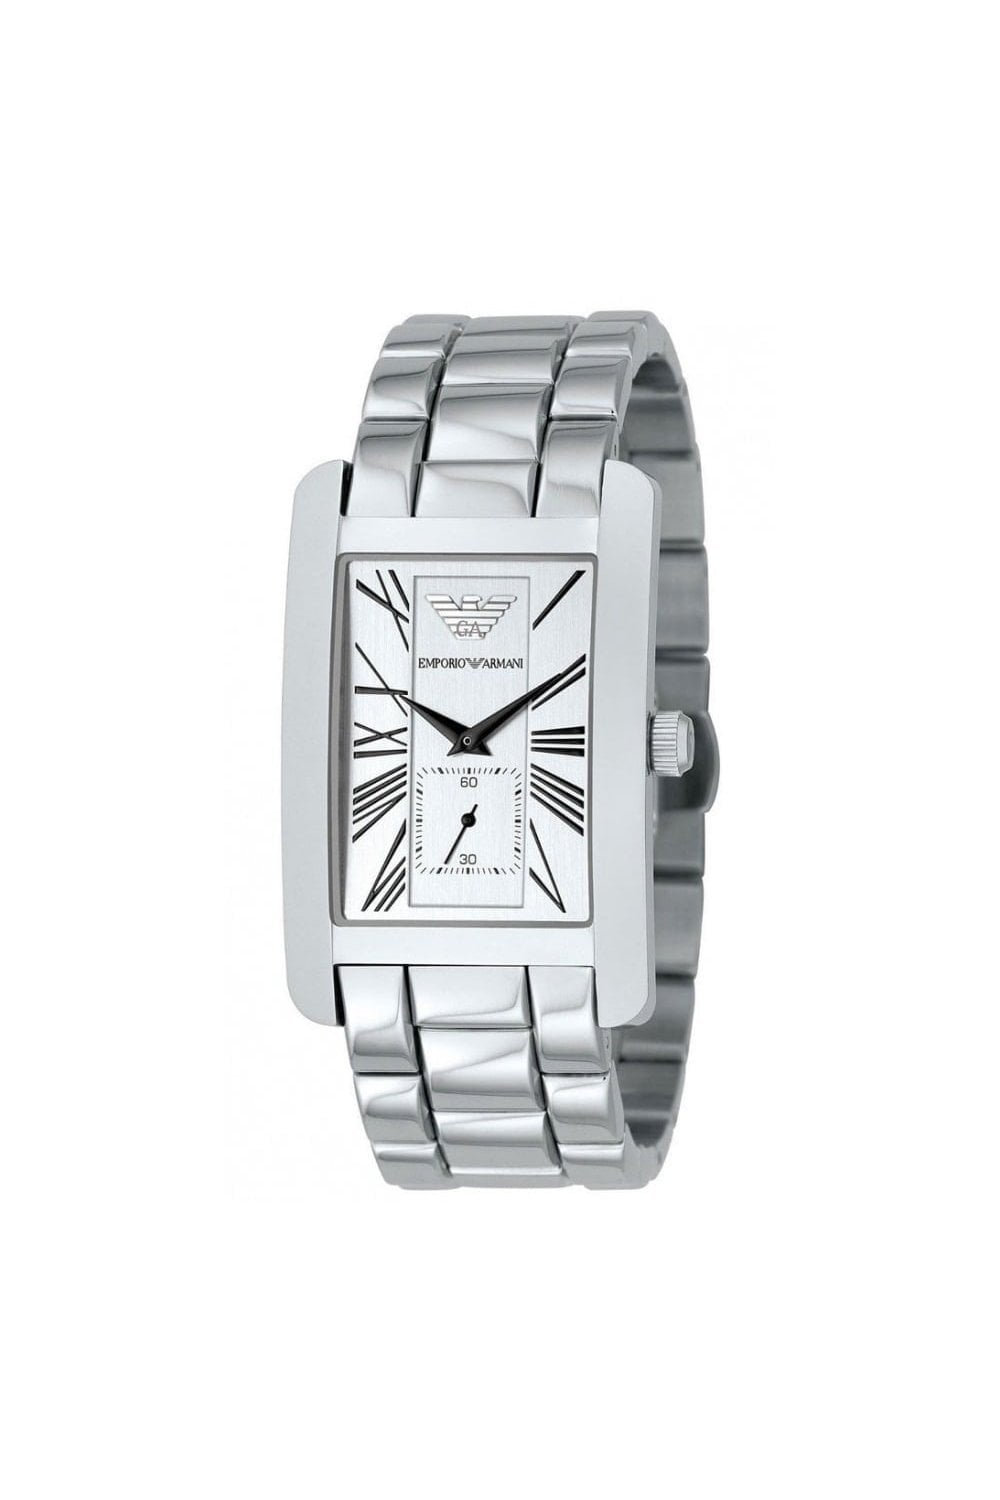 0e9f0963d Emporio Armani AR0145 Mens Classic Watch - Mens Watches from The ...